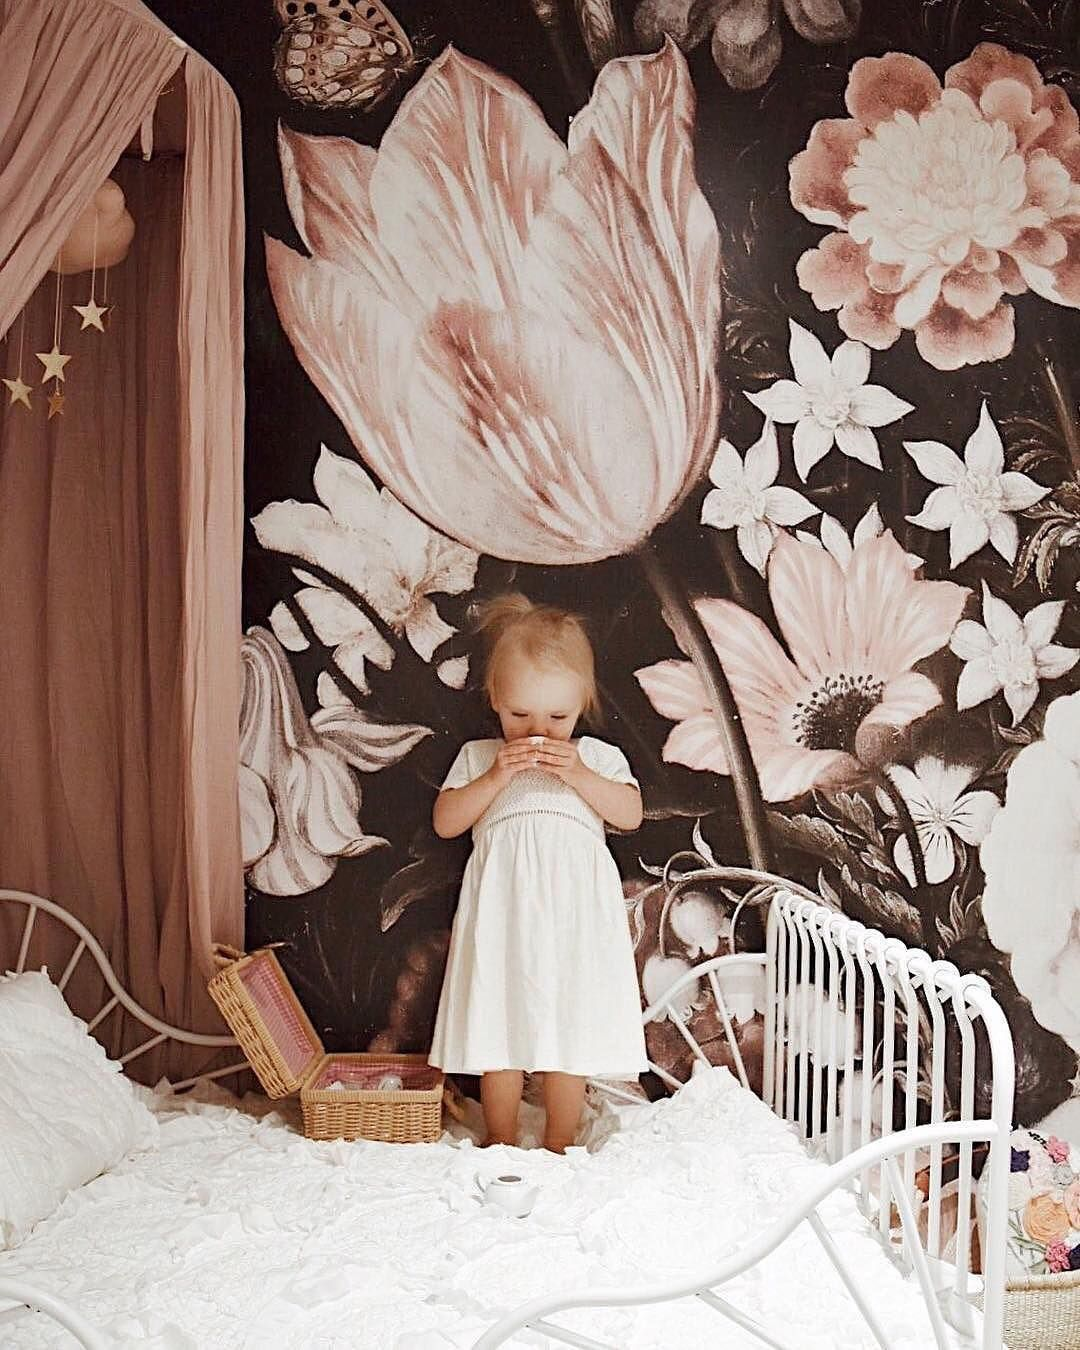 368 Best Images About Wallpaper On Pinterest: Pin By Nicole Schön (Heart Of Glam) On SOMEDAY